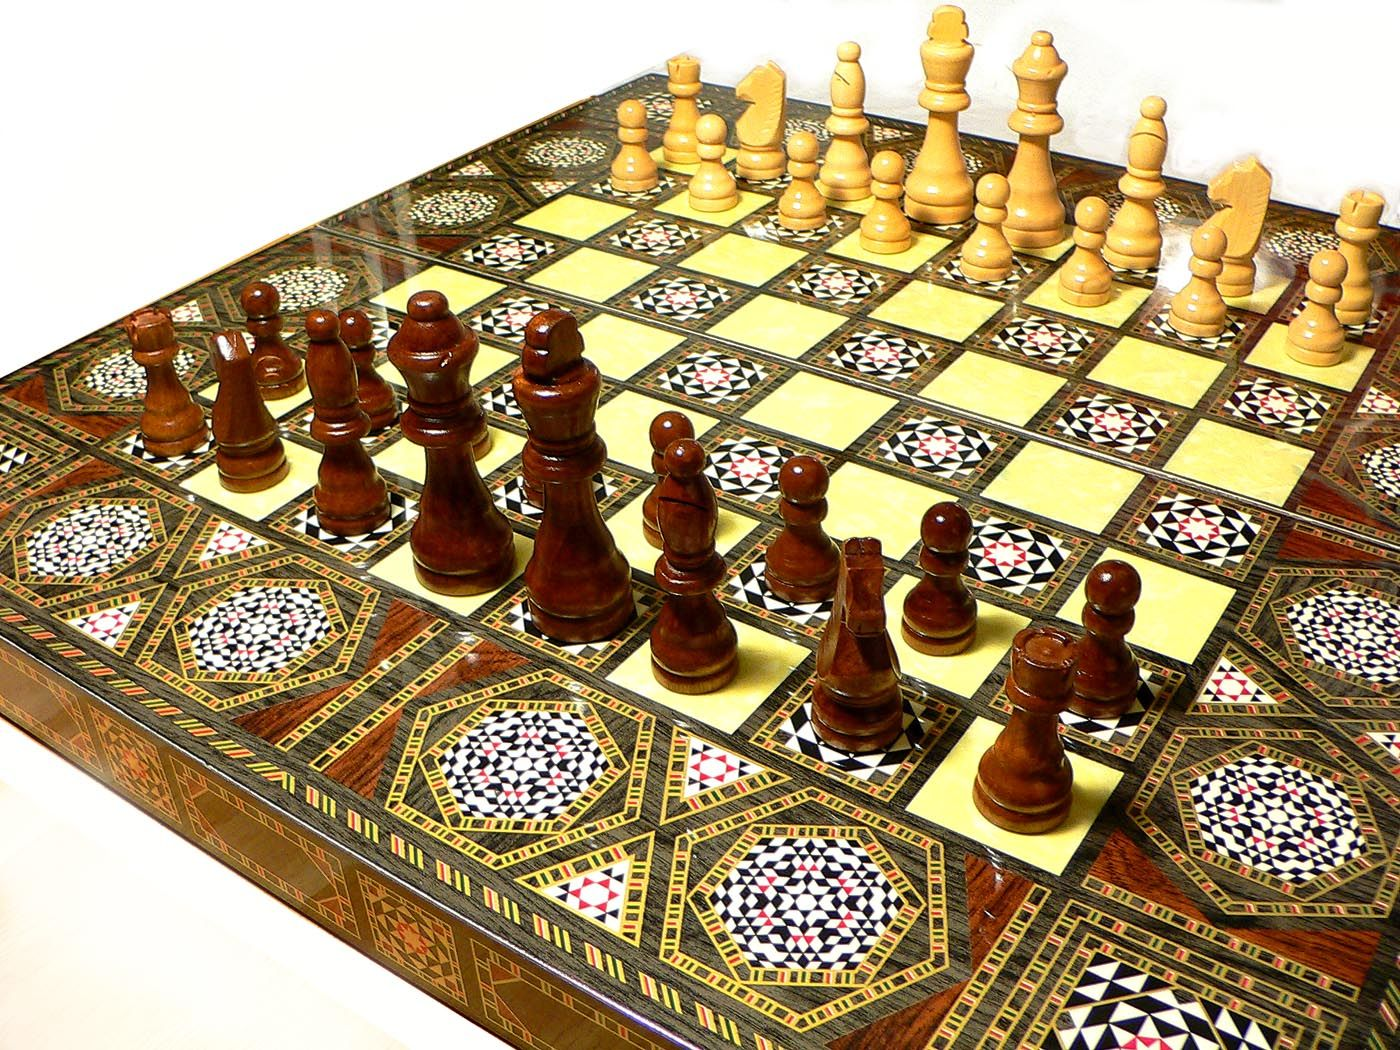 Pin By Sara Herlein On Chess And More Chess Board Chess Game